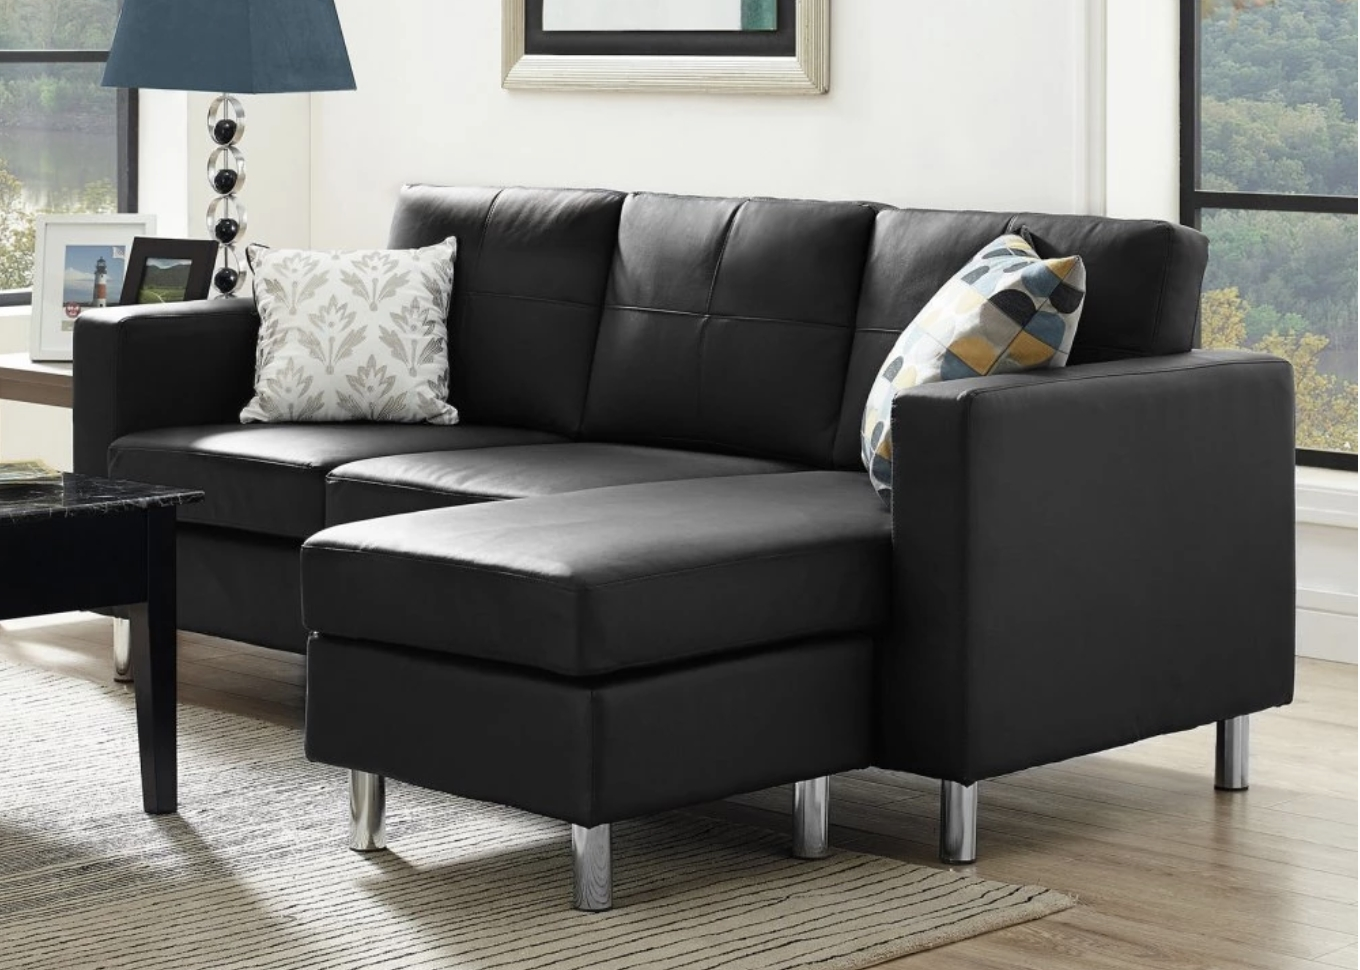 Mini Sectional Sofas Regarding Trendy 75 Modern Sectional Sofas For Small Spaces (2018) (View 6 of 15)